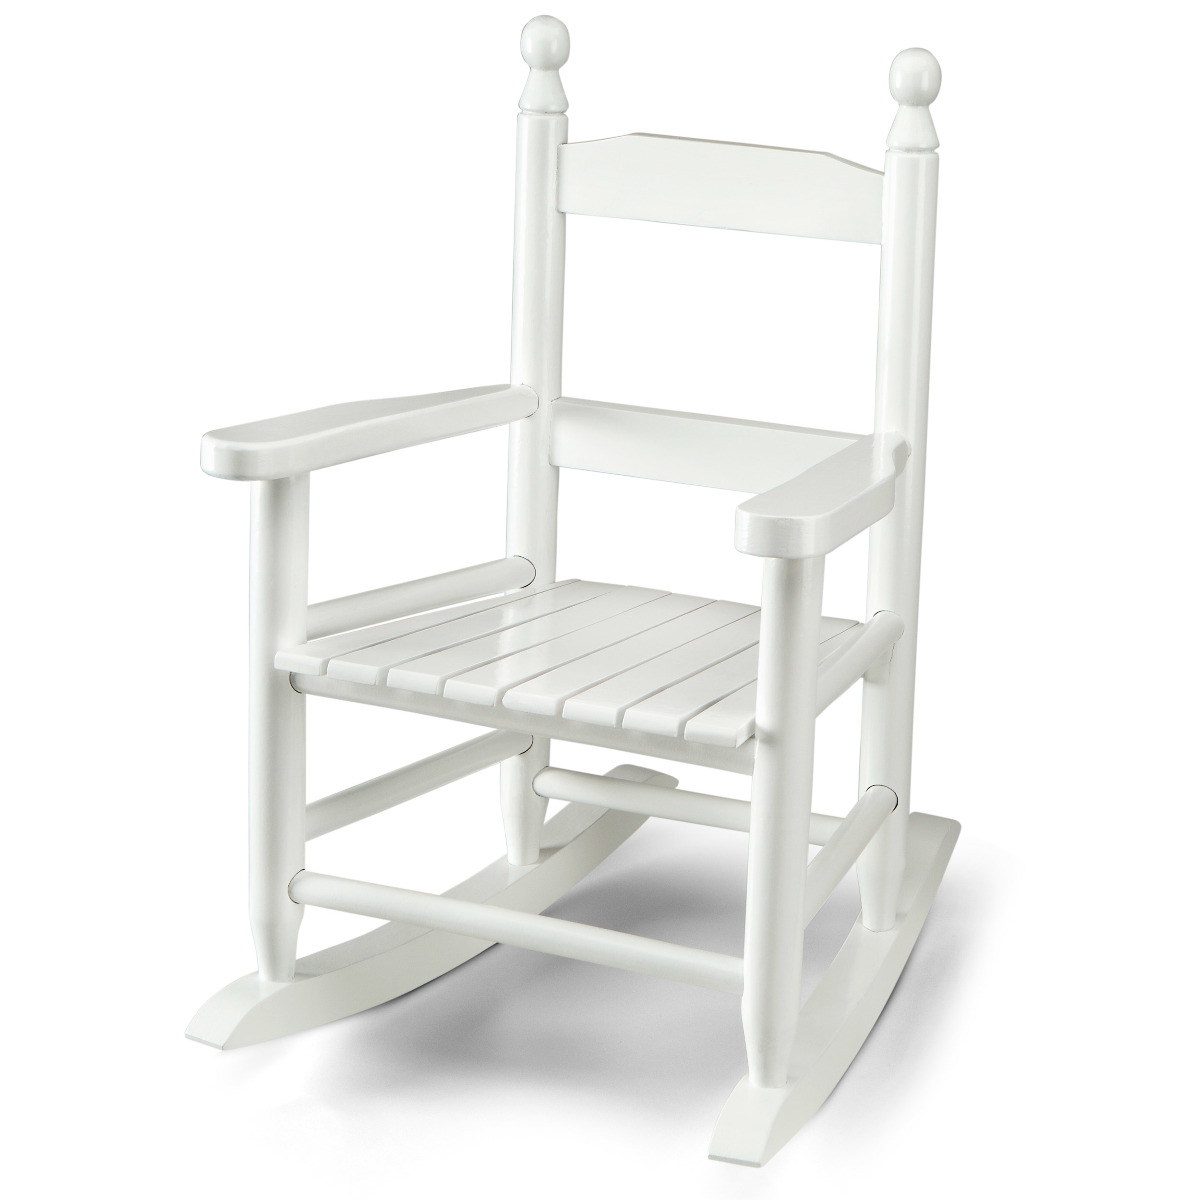 White Wood Chair Wooden Rocking Chair For Kids White Ebay